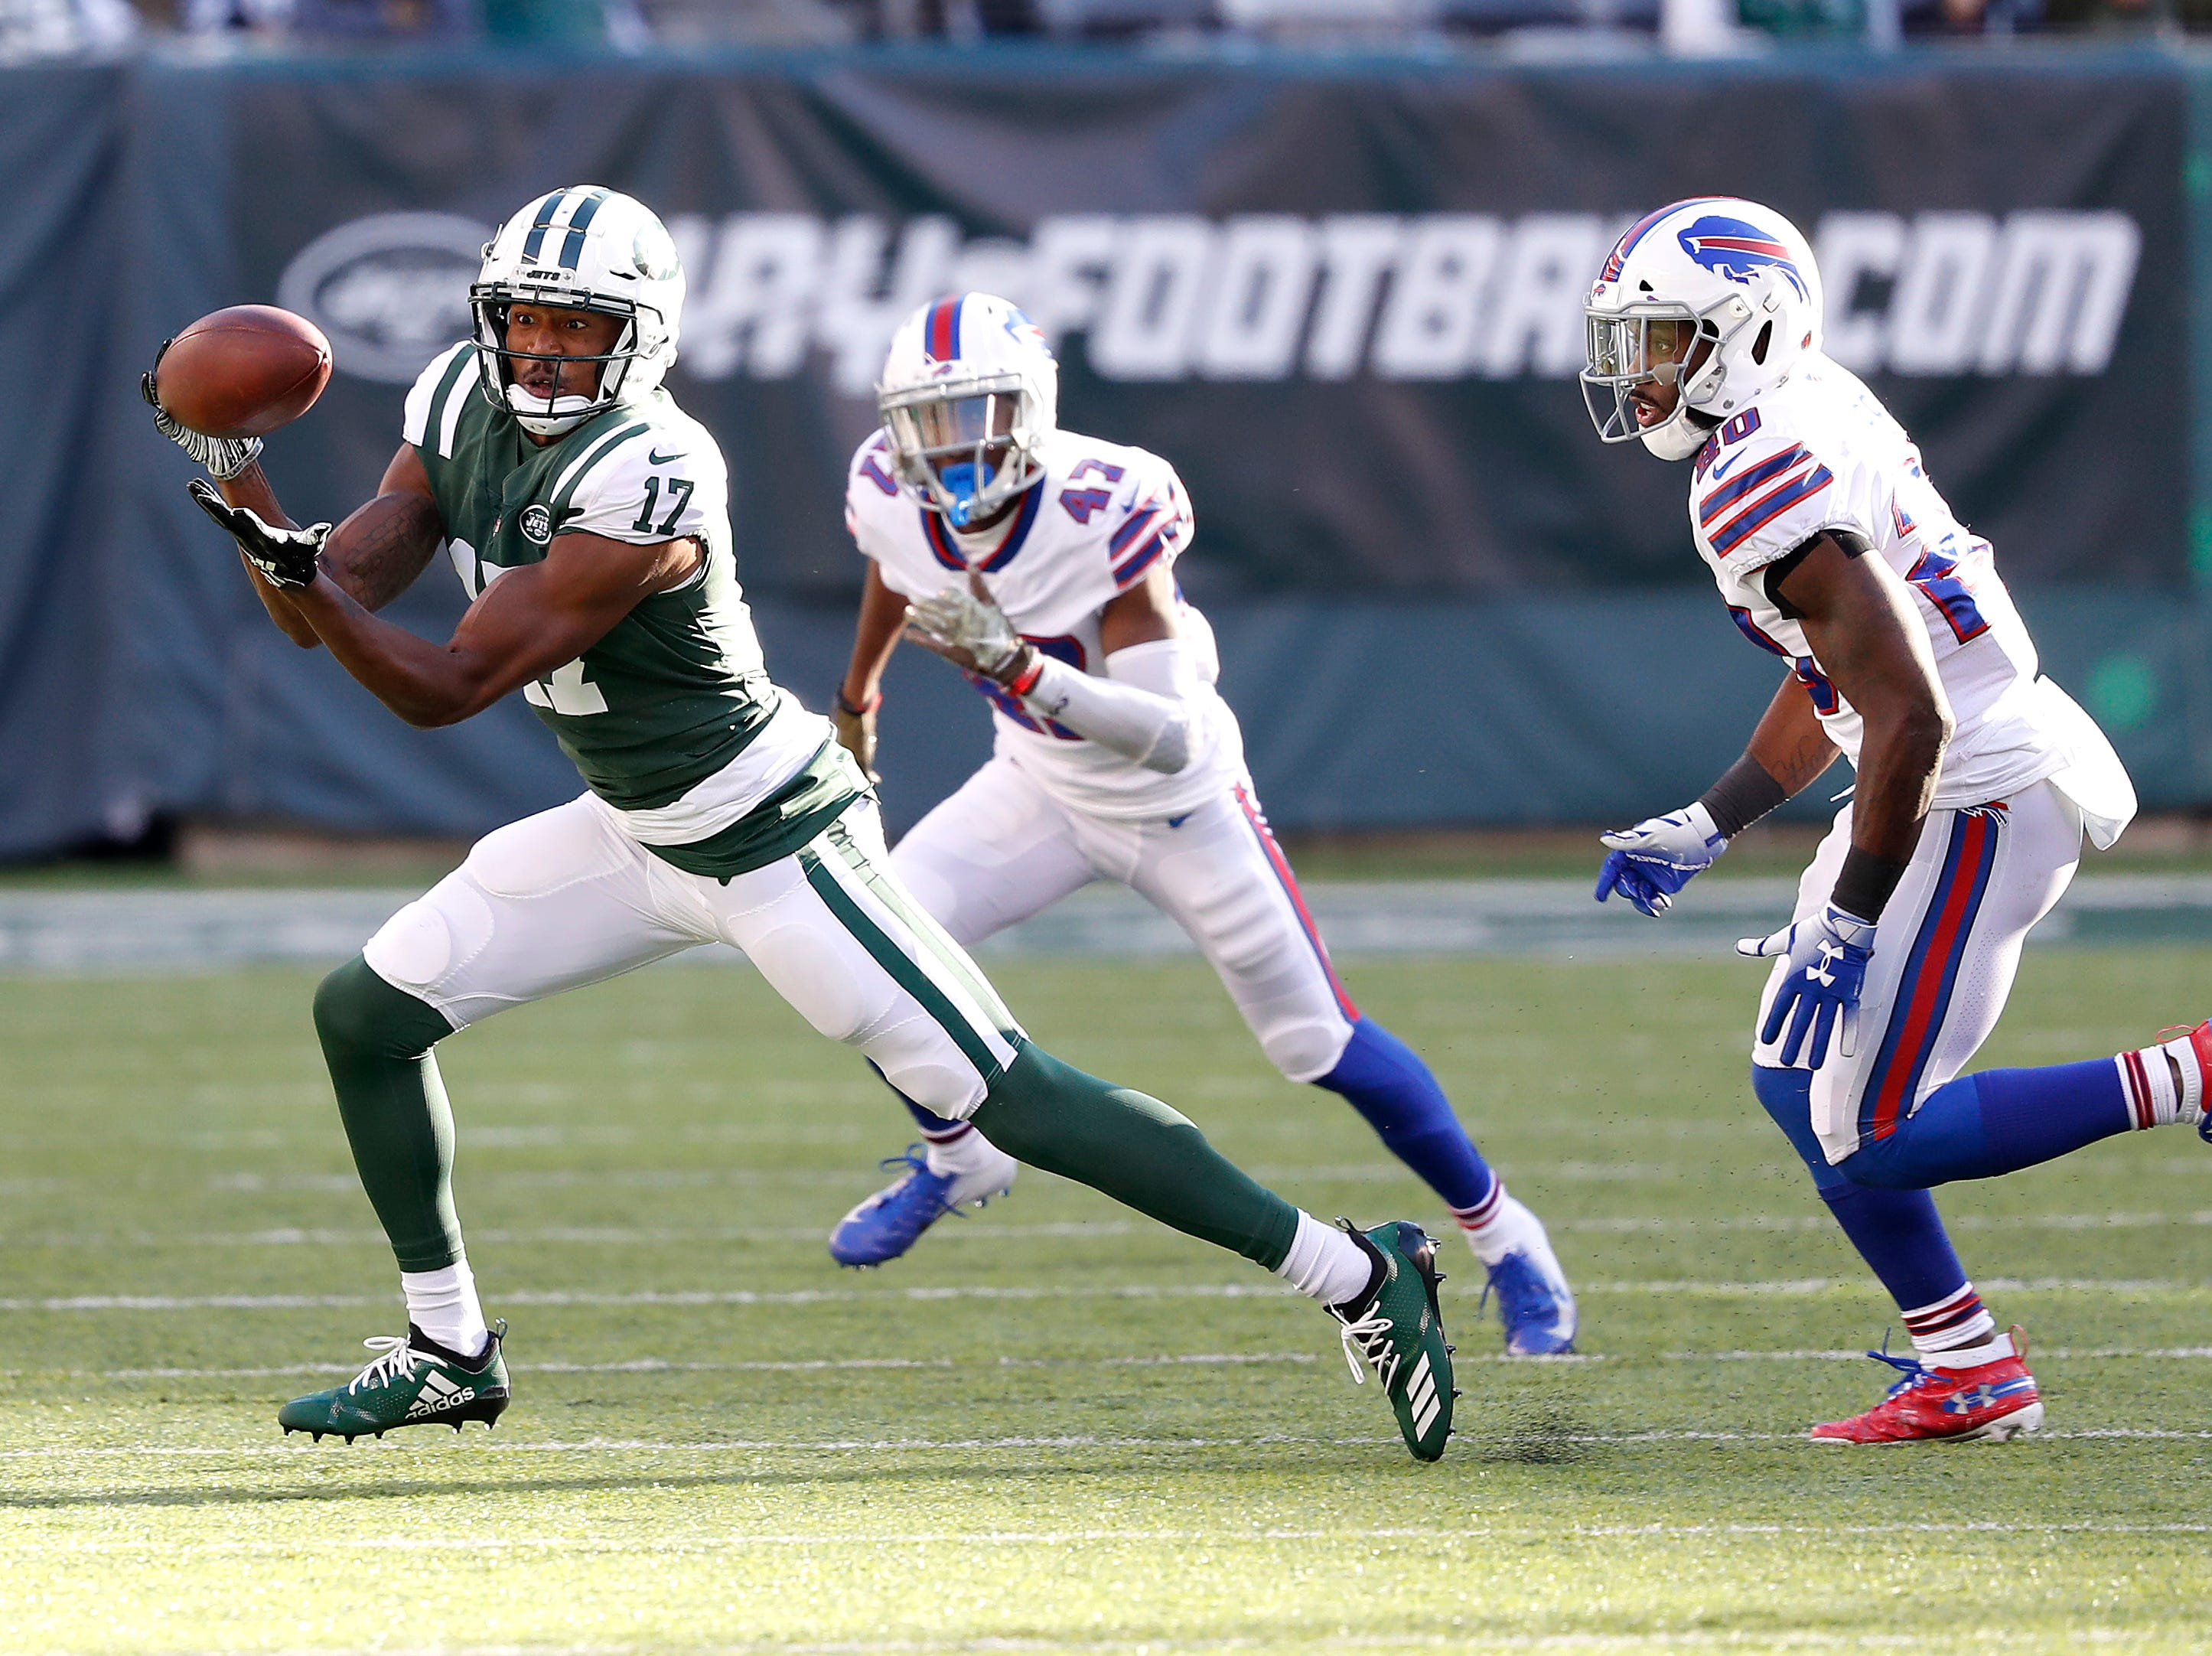 EAST RUTHERFORD, NEW JERSEY - NOVEMBER 11: Charone Peake #17 of the New York Jets attempts to catch the pass during the second quarter against Jason Croom #80 of the Buffalo Bills at MetLife Stadium on November 11, 2018 in East Rutherford, New Jersey. (Photo by Michael Owens/Getty Images)